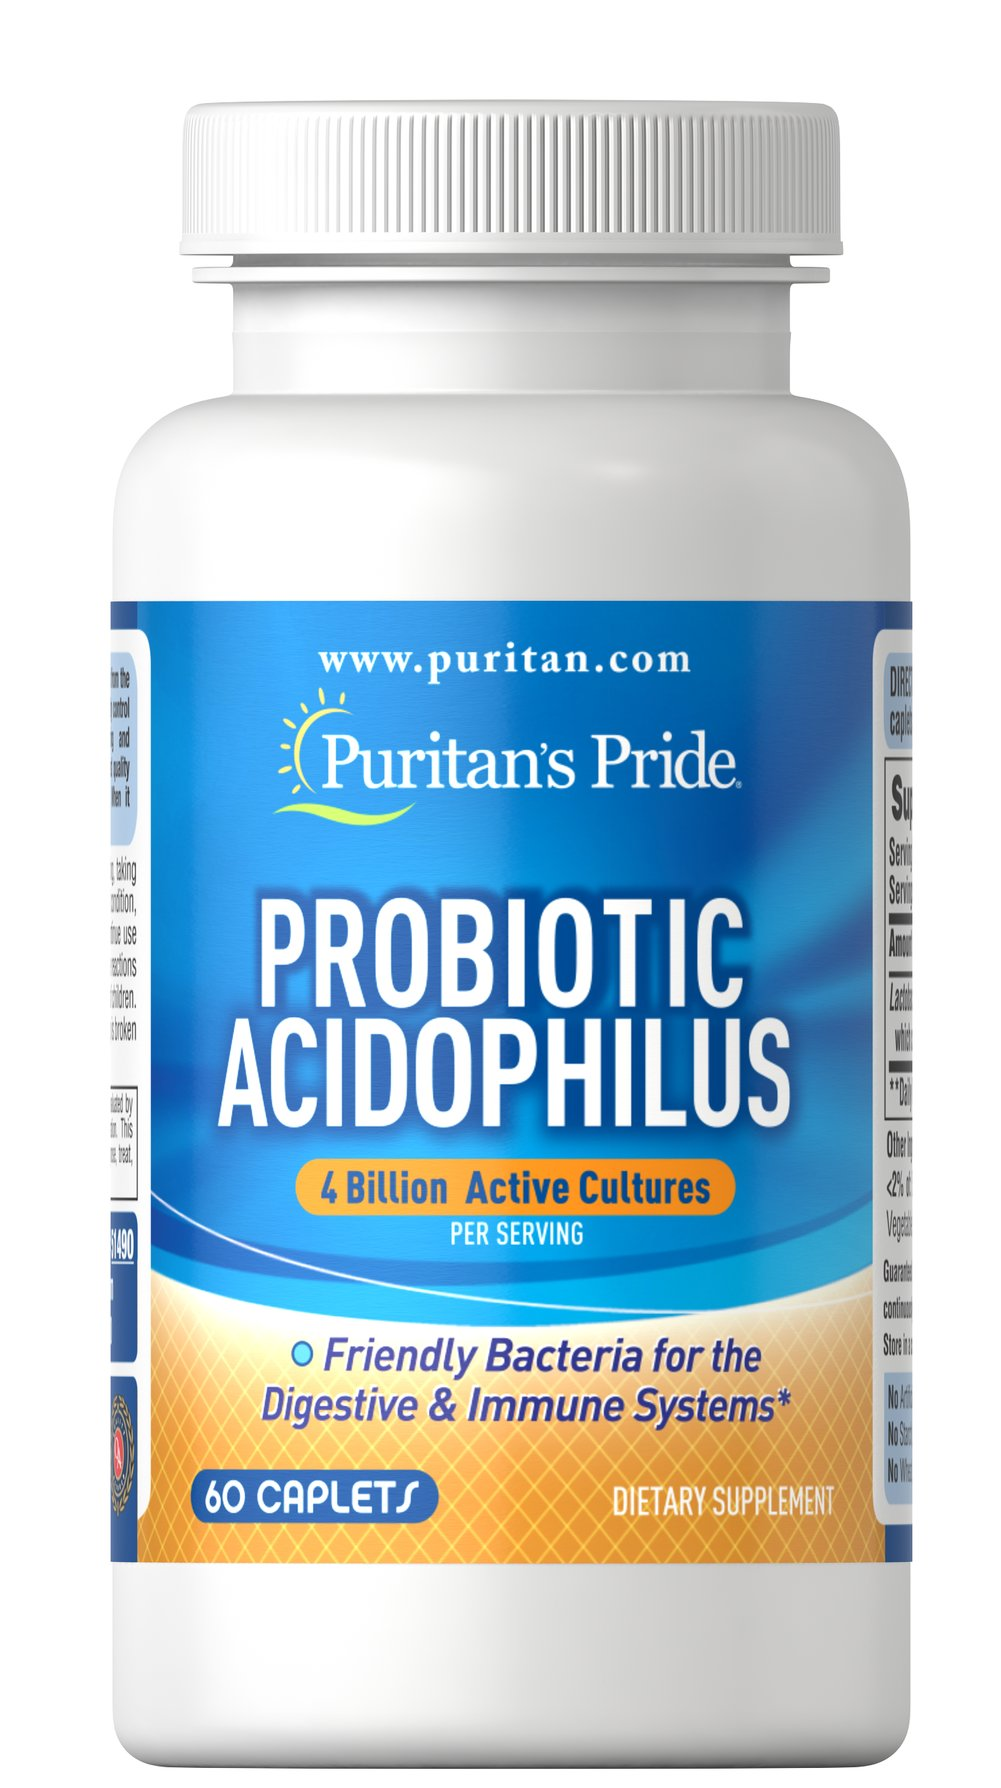 Acidophilus & Digestive Enzymes Get the digestive support you need with Puritan's Pride Acidophilus & Digestive Enzymes.** This broad-spectrum dual-action formula contains 2 Billion Bio-Active Probiotic Microorganisms<sup>#</sup> and 9 Digestive Enzymes. <br /><br />The Bio-Active Probiotic Complex comes from 5 Beneficial Cultures. These cultures help promote the healthy functioning of the intestinal system and helps maintain a favorable balance of intesti